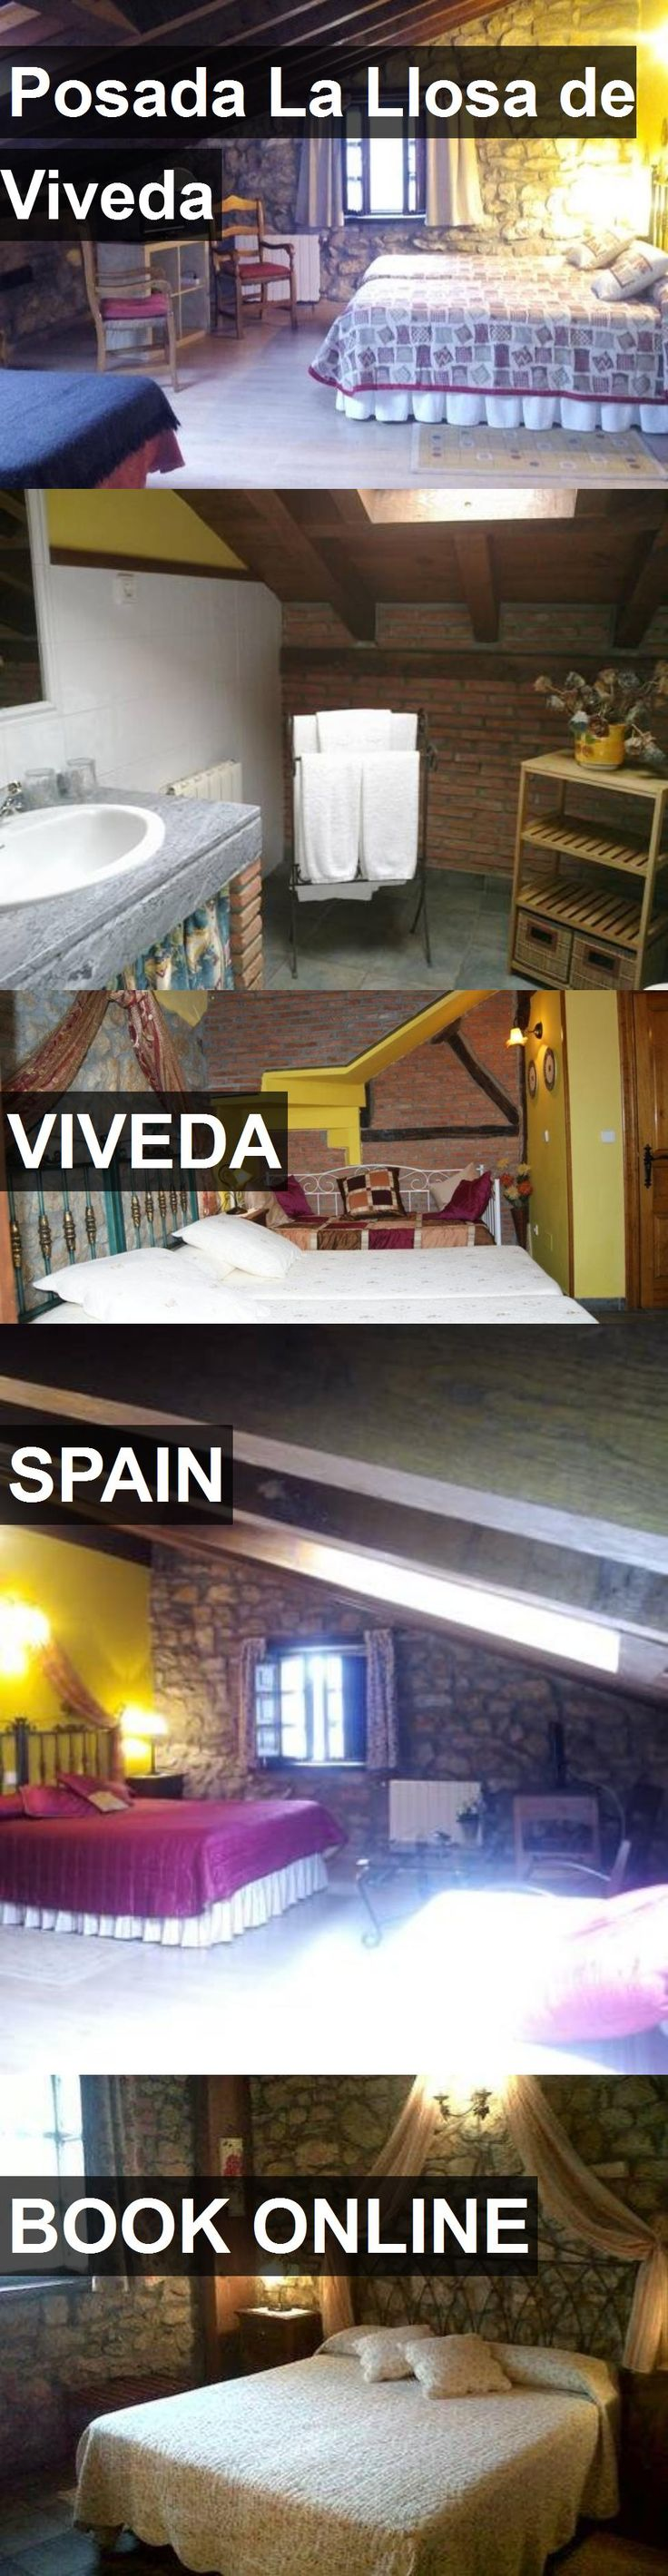 Hotel Posada La Llosa de Viveda in Viveda, Spain. For more information, photos, reviews and best prices please follow the link. #Spain #Viveda #travel #vacation #hotel